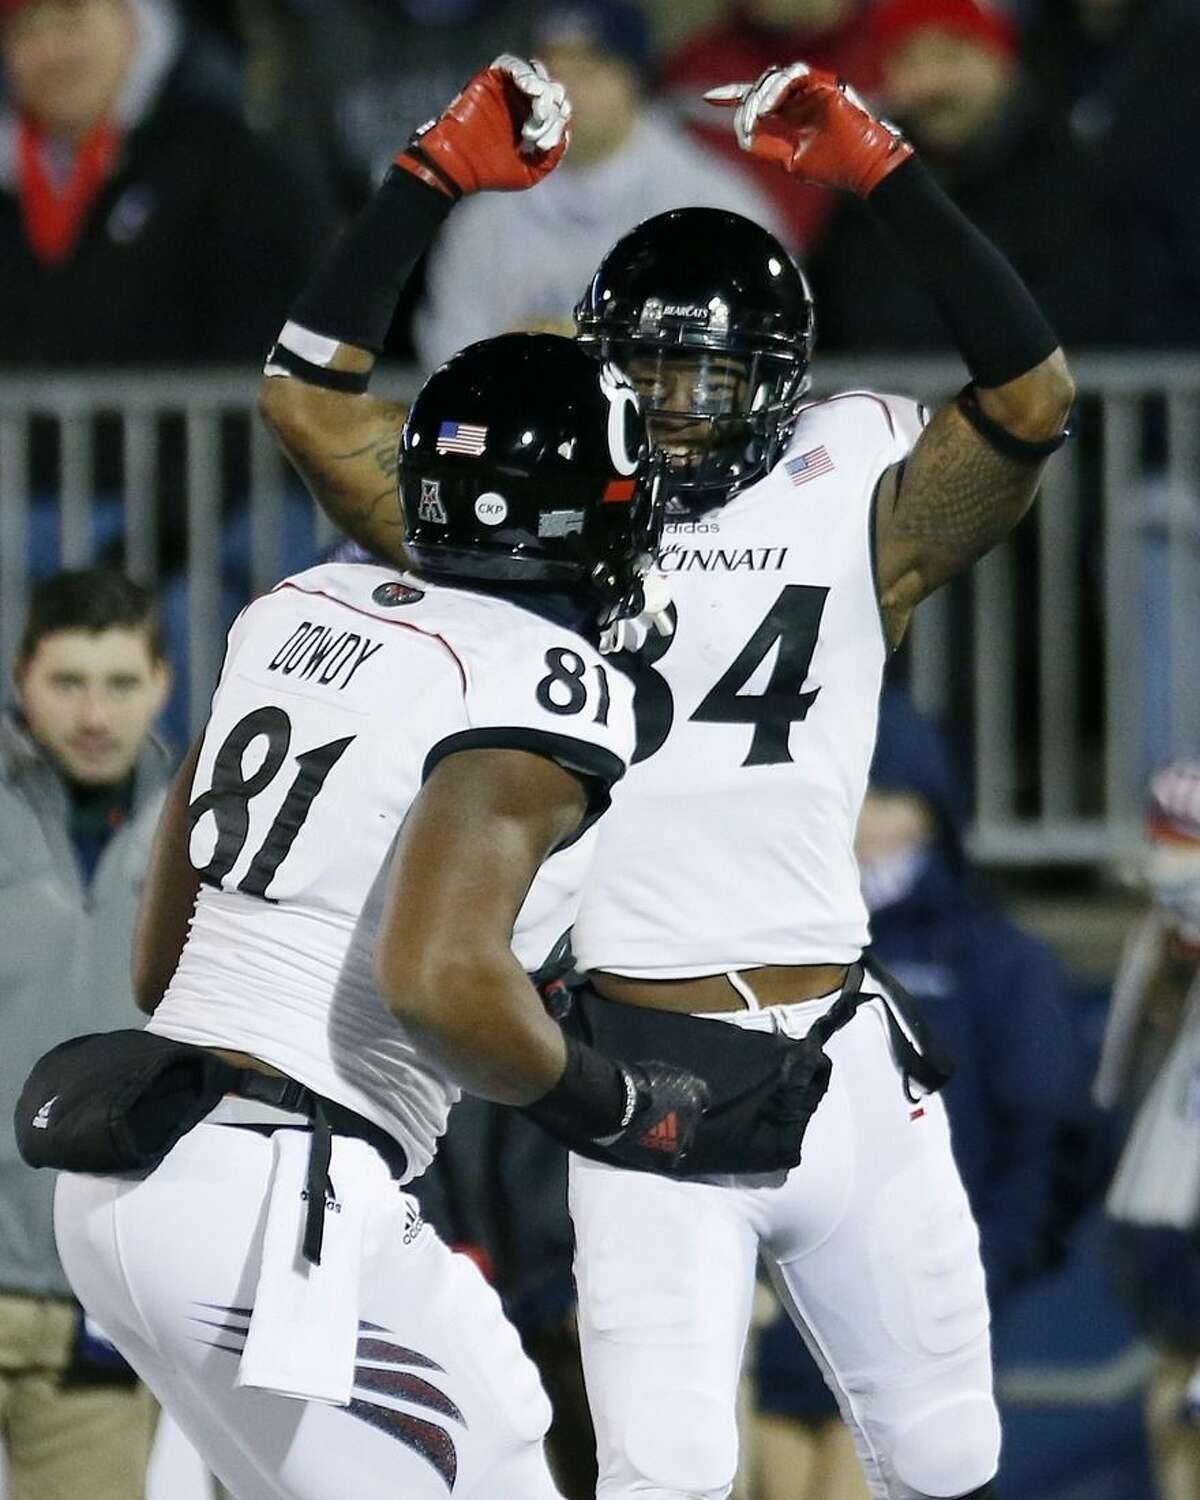 Cincinnati wide receiver Nate Cole (84) celebrates his touchdown with tight end DJ Dowdy (81) in the first quarter of an NCAA college football game against Connecticut in East Hartford, Conn., Saturday, Nov. 22, 2014. (AP Photo/Michael Dwyer)